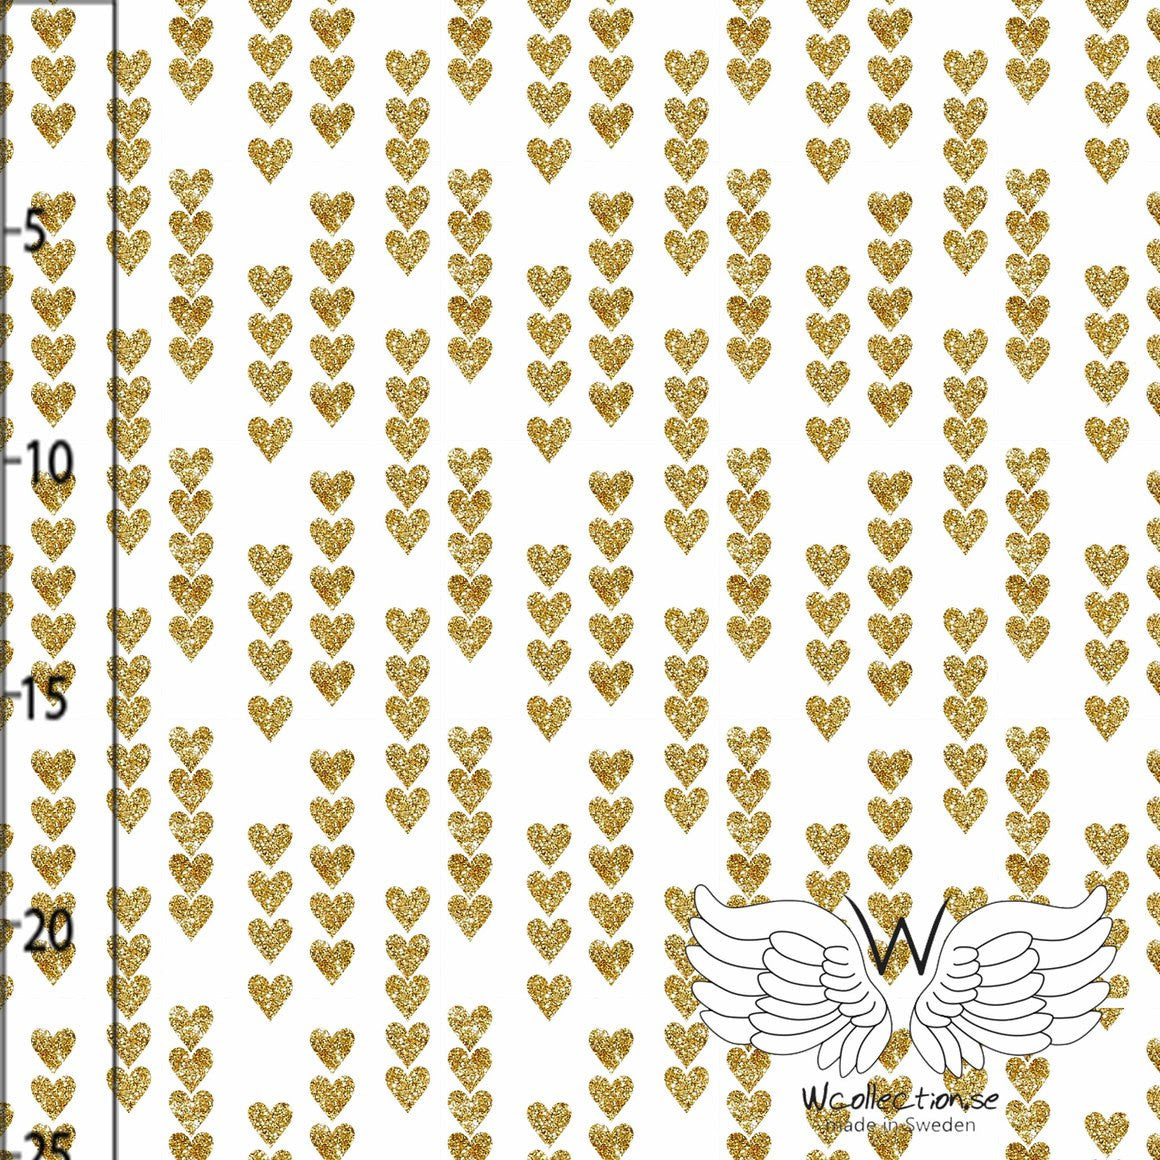 Gold Glittery Hearts by Wcollection